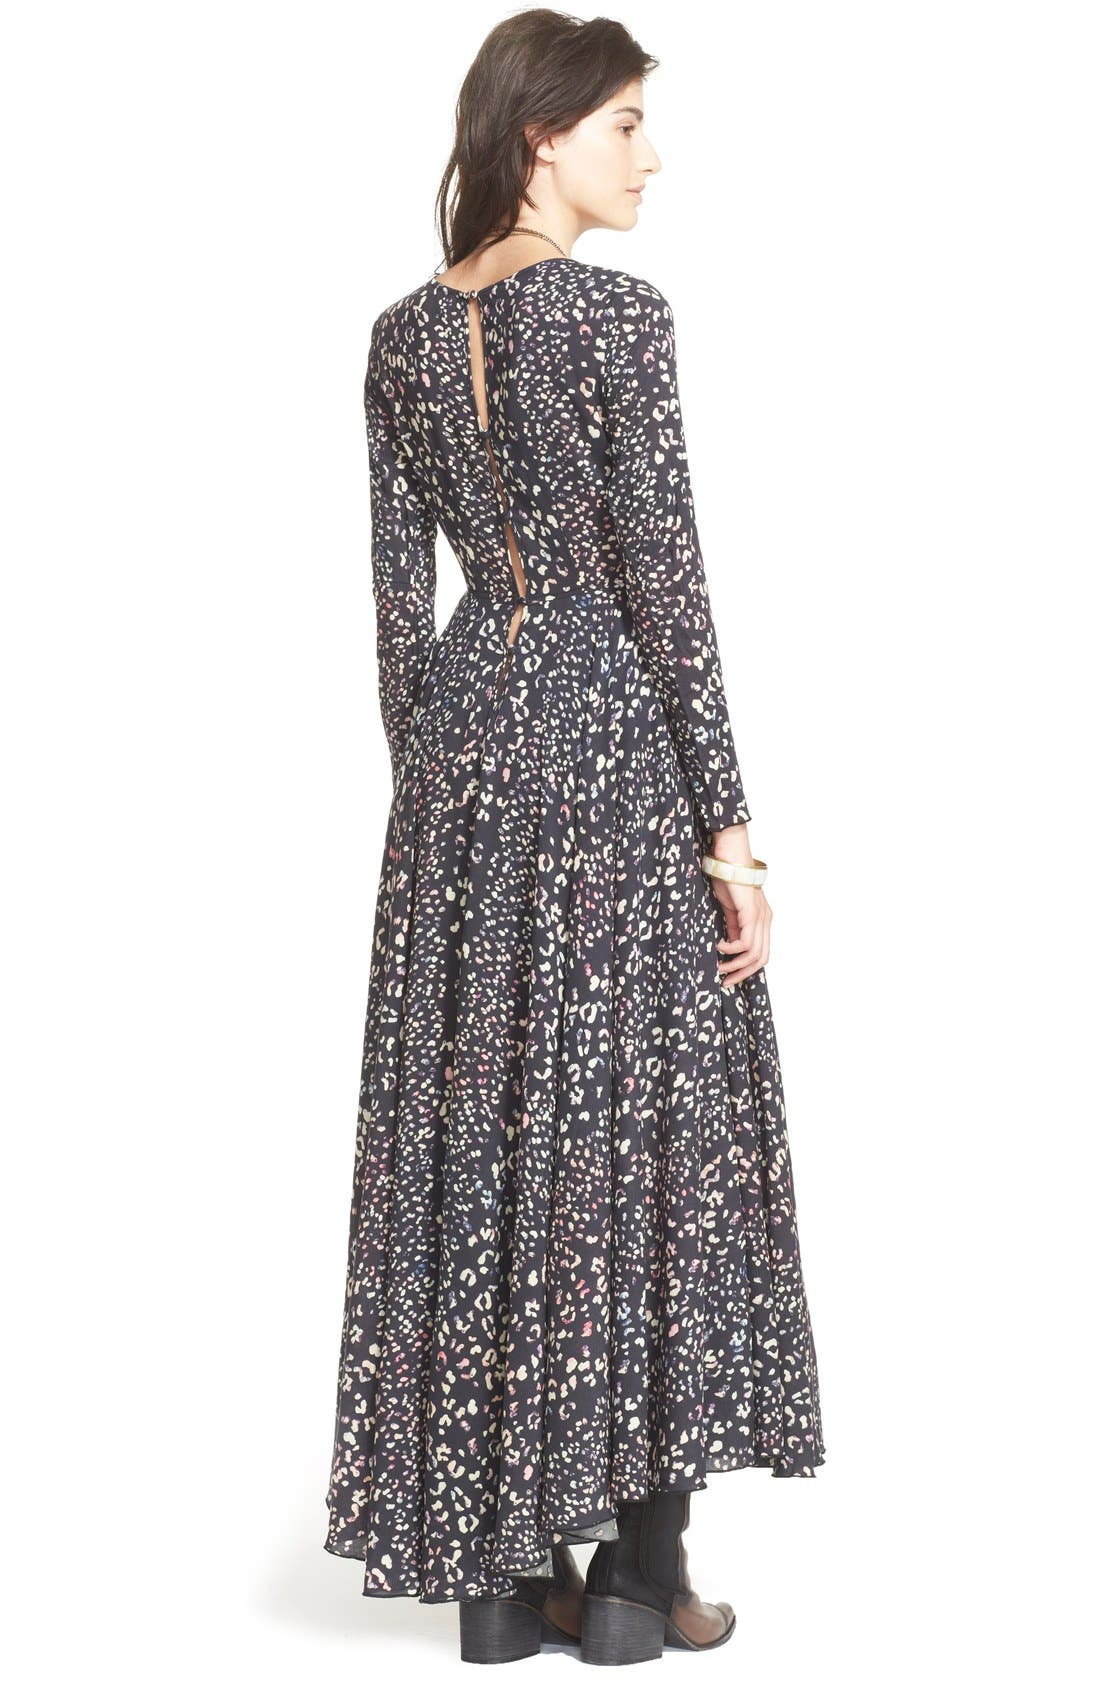 FREE PEOPLE, 'First Kiss' Maxi Dress, Alternate thumbnail 2, color, 001